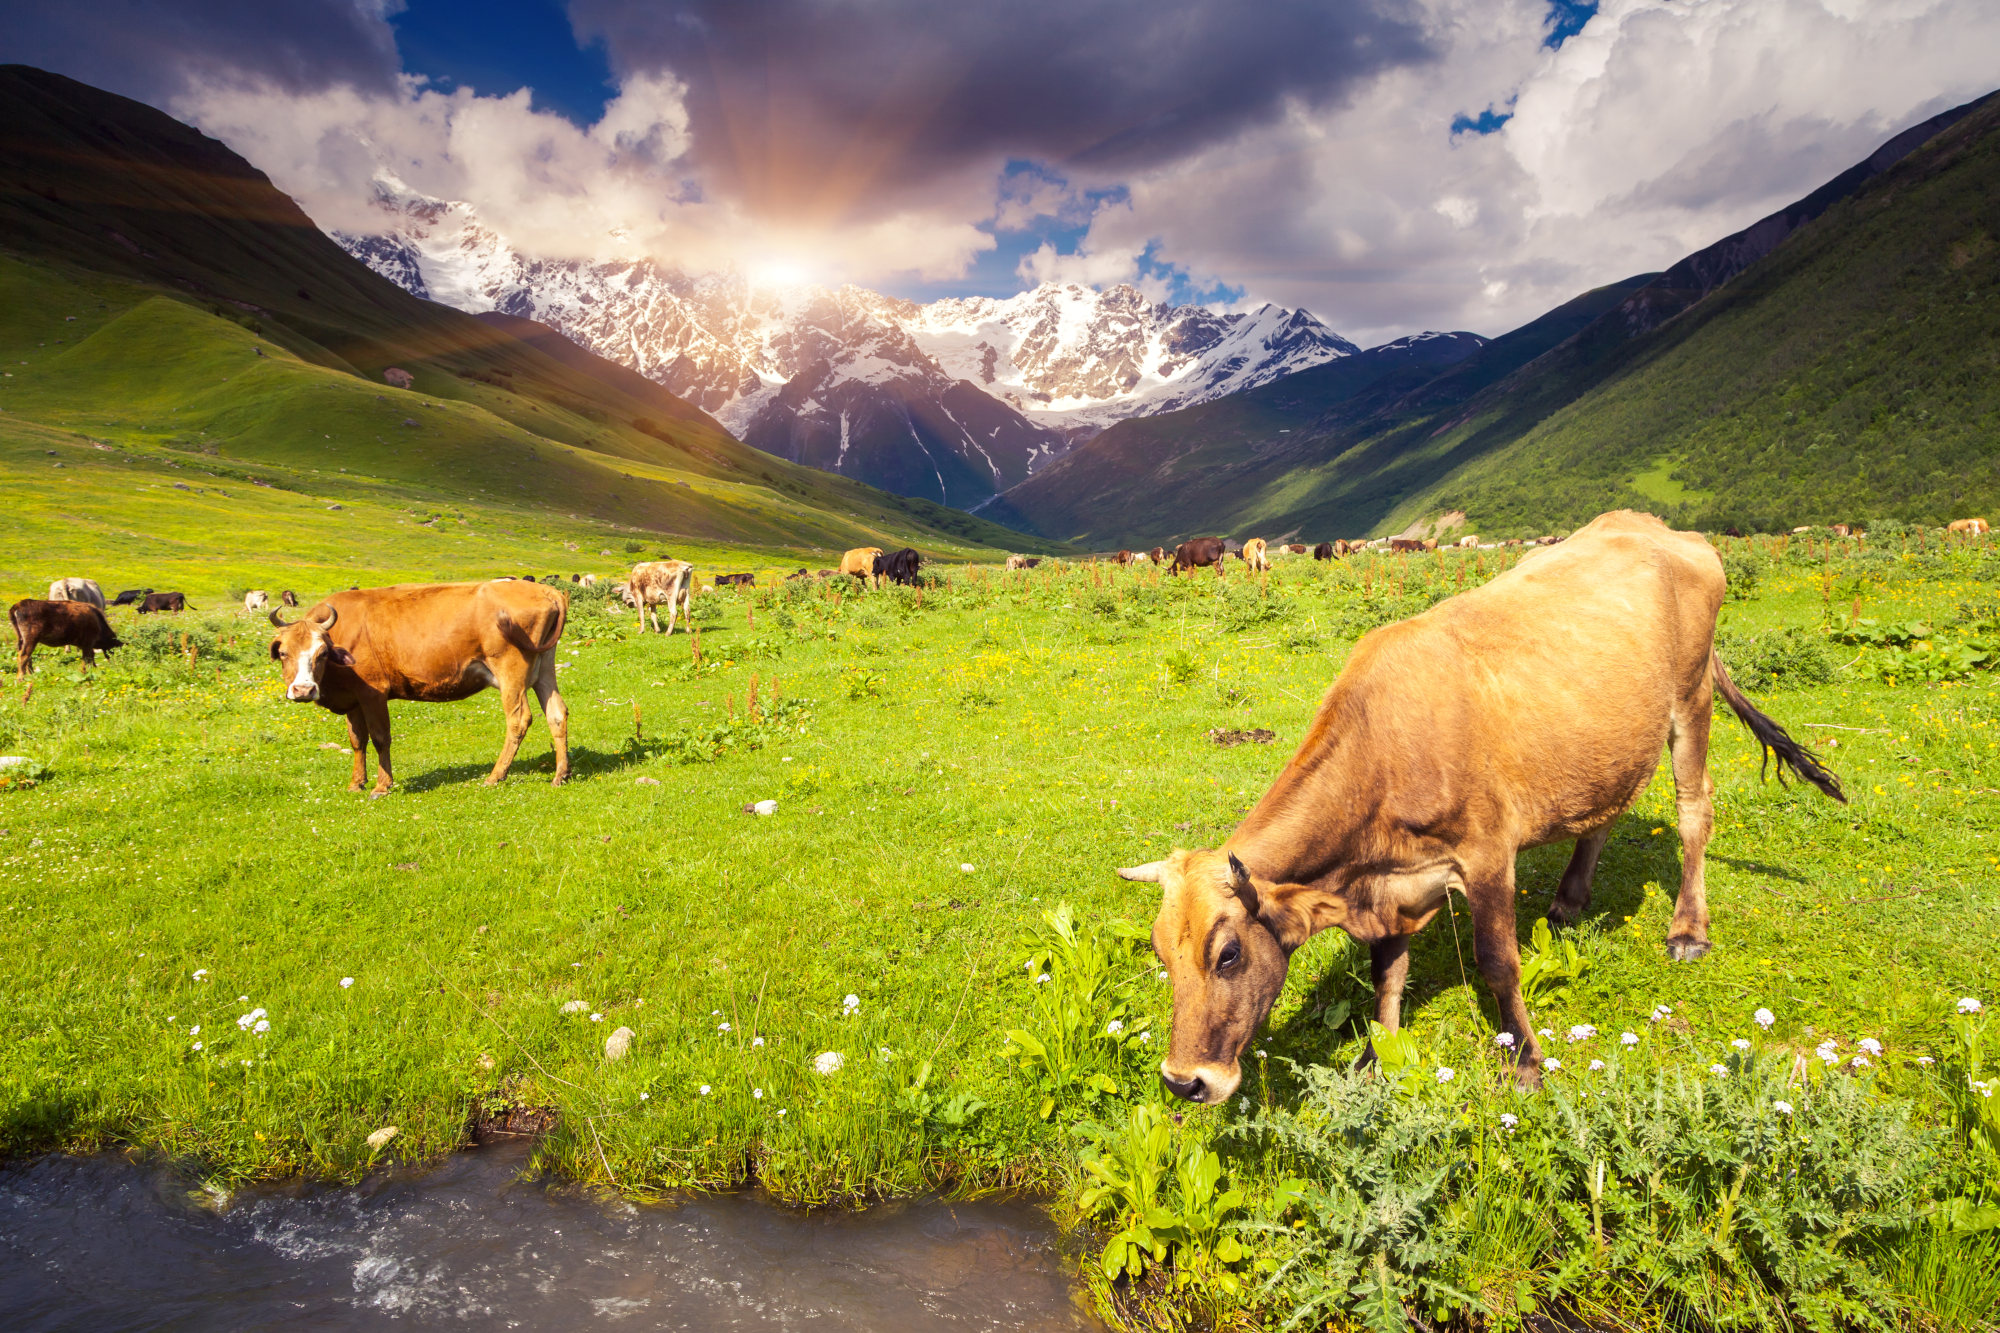 Cows grazing on the meadows in Svaneti